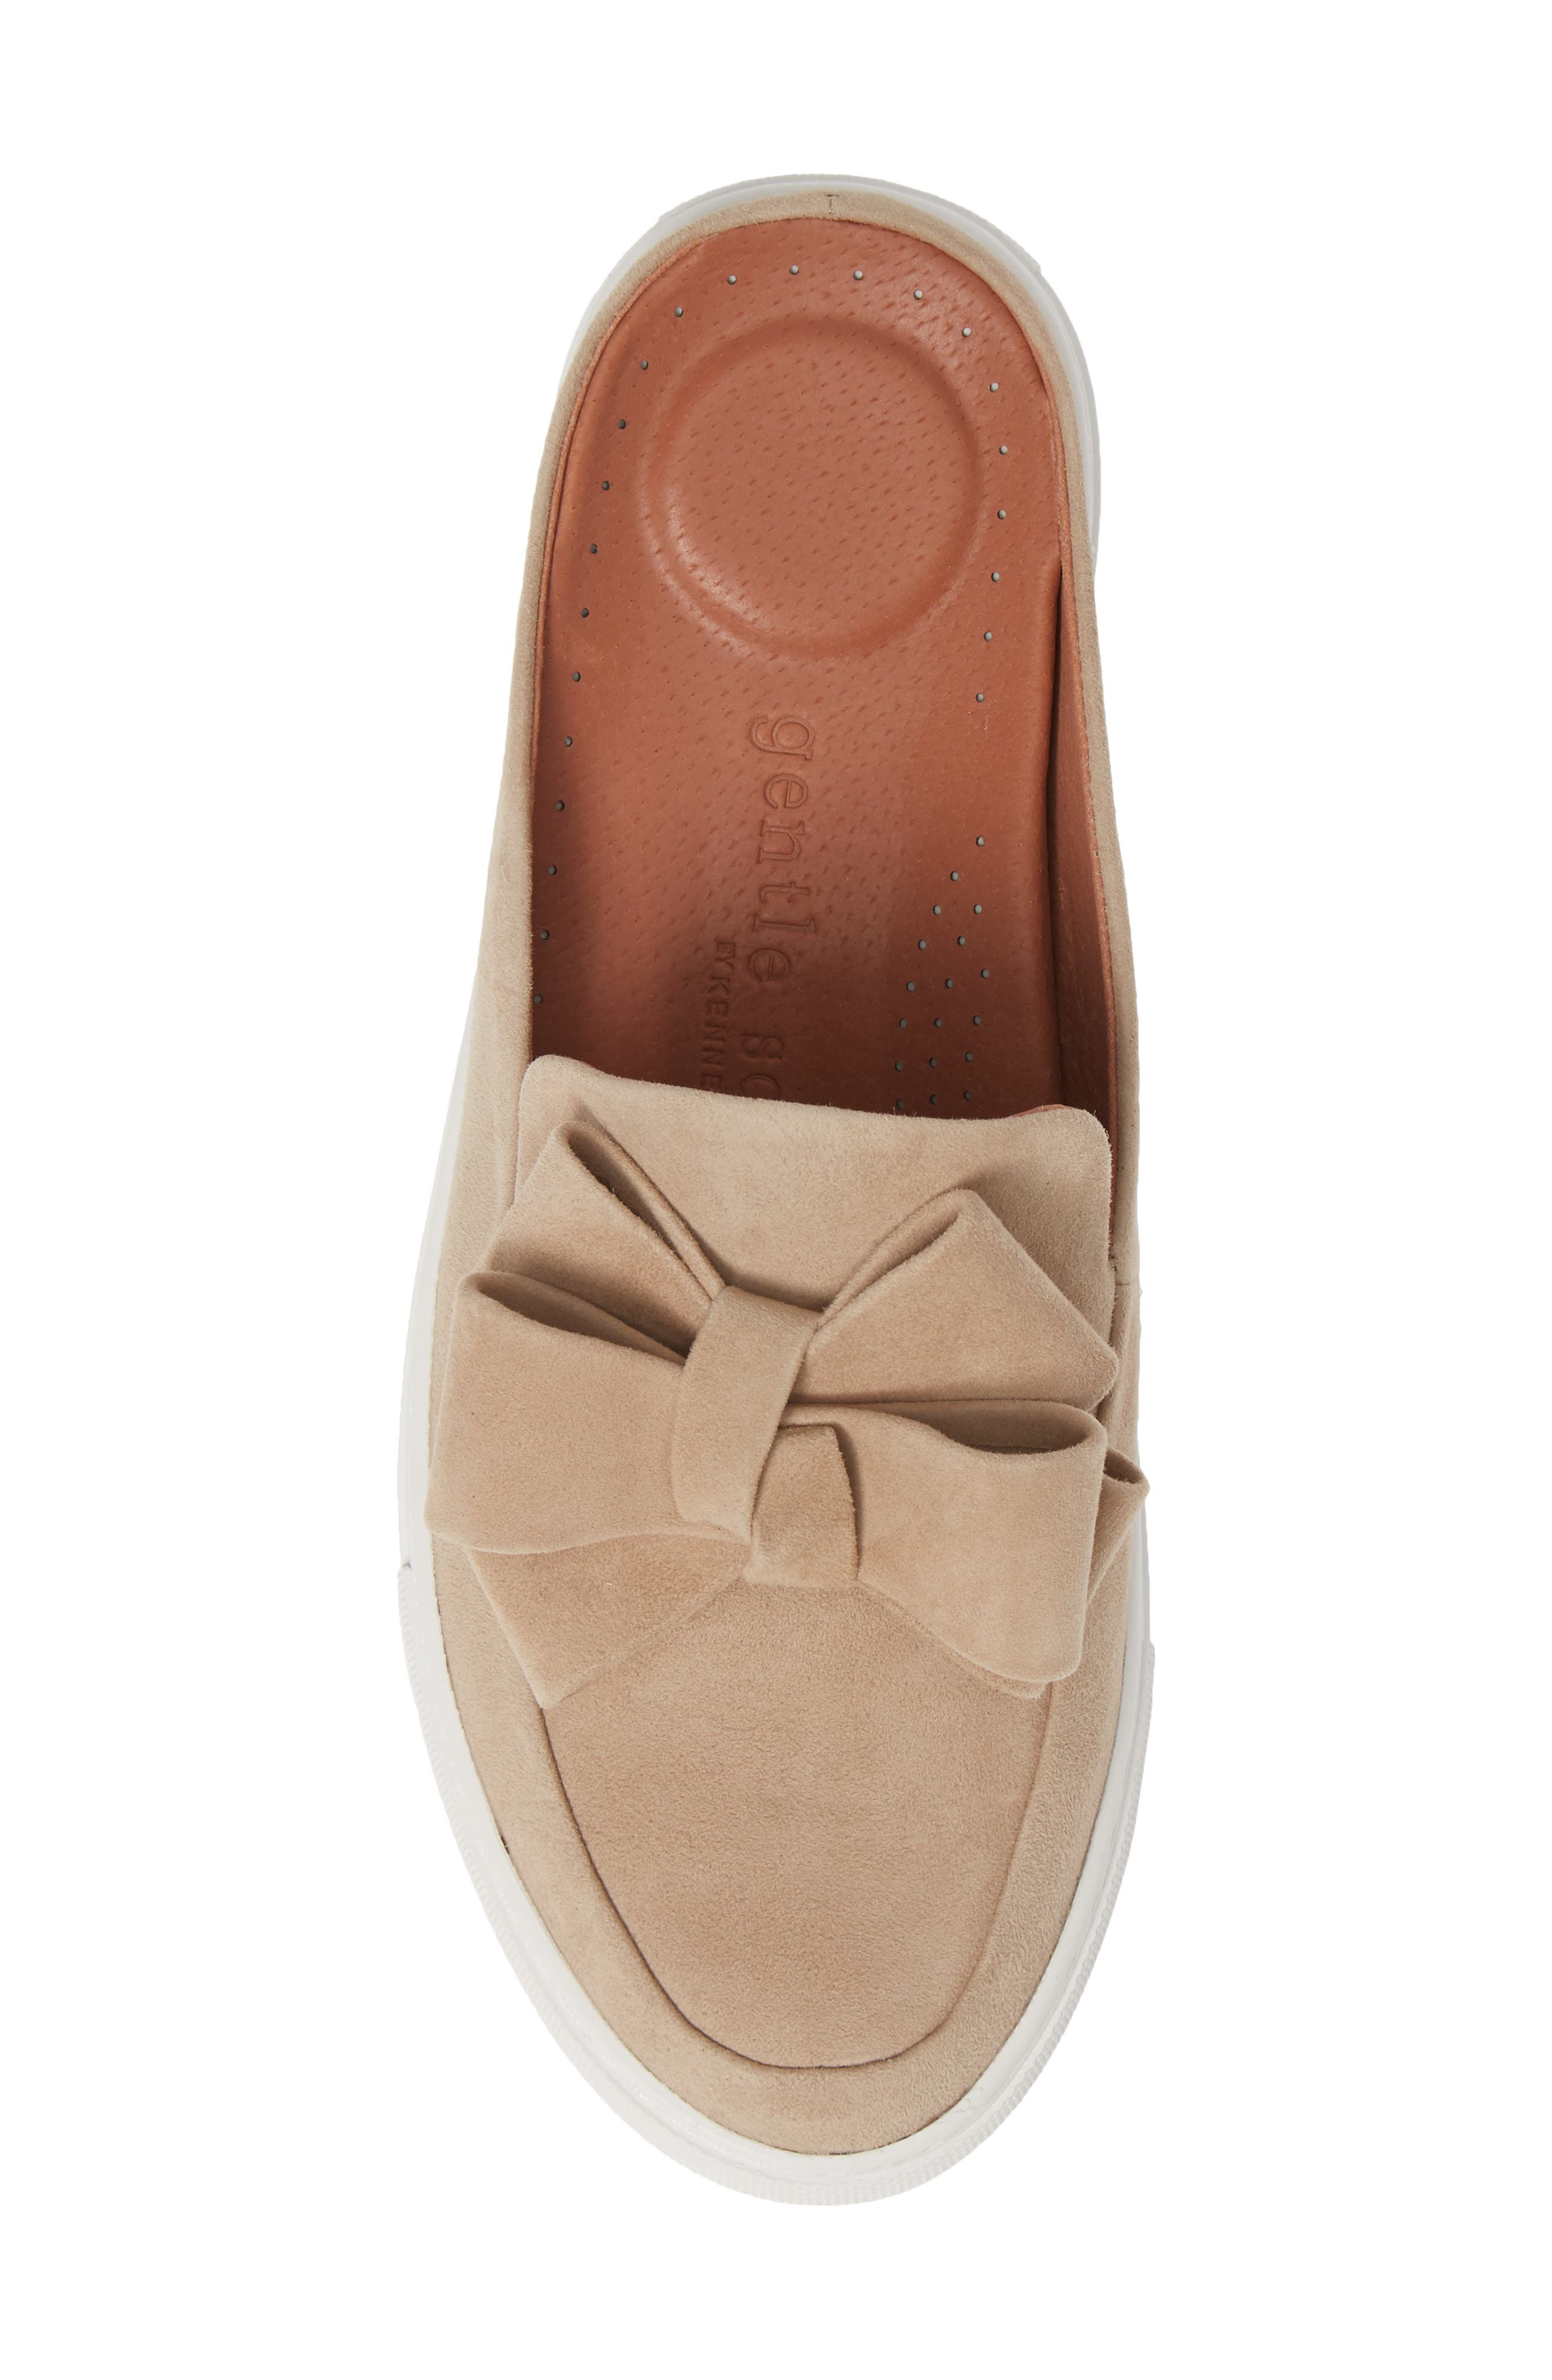 GENTLE SOULS BY KENNETH COLE, Rory Bow Mule, Alternate thumbnail 5, color, 233